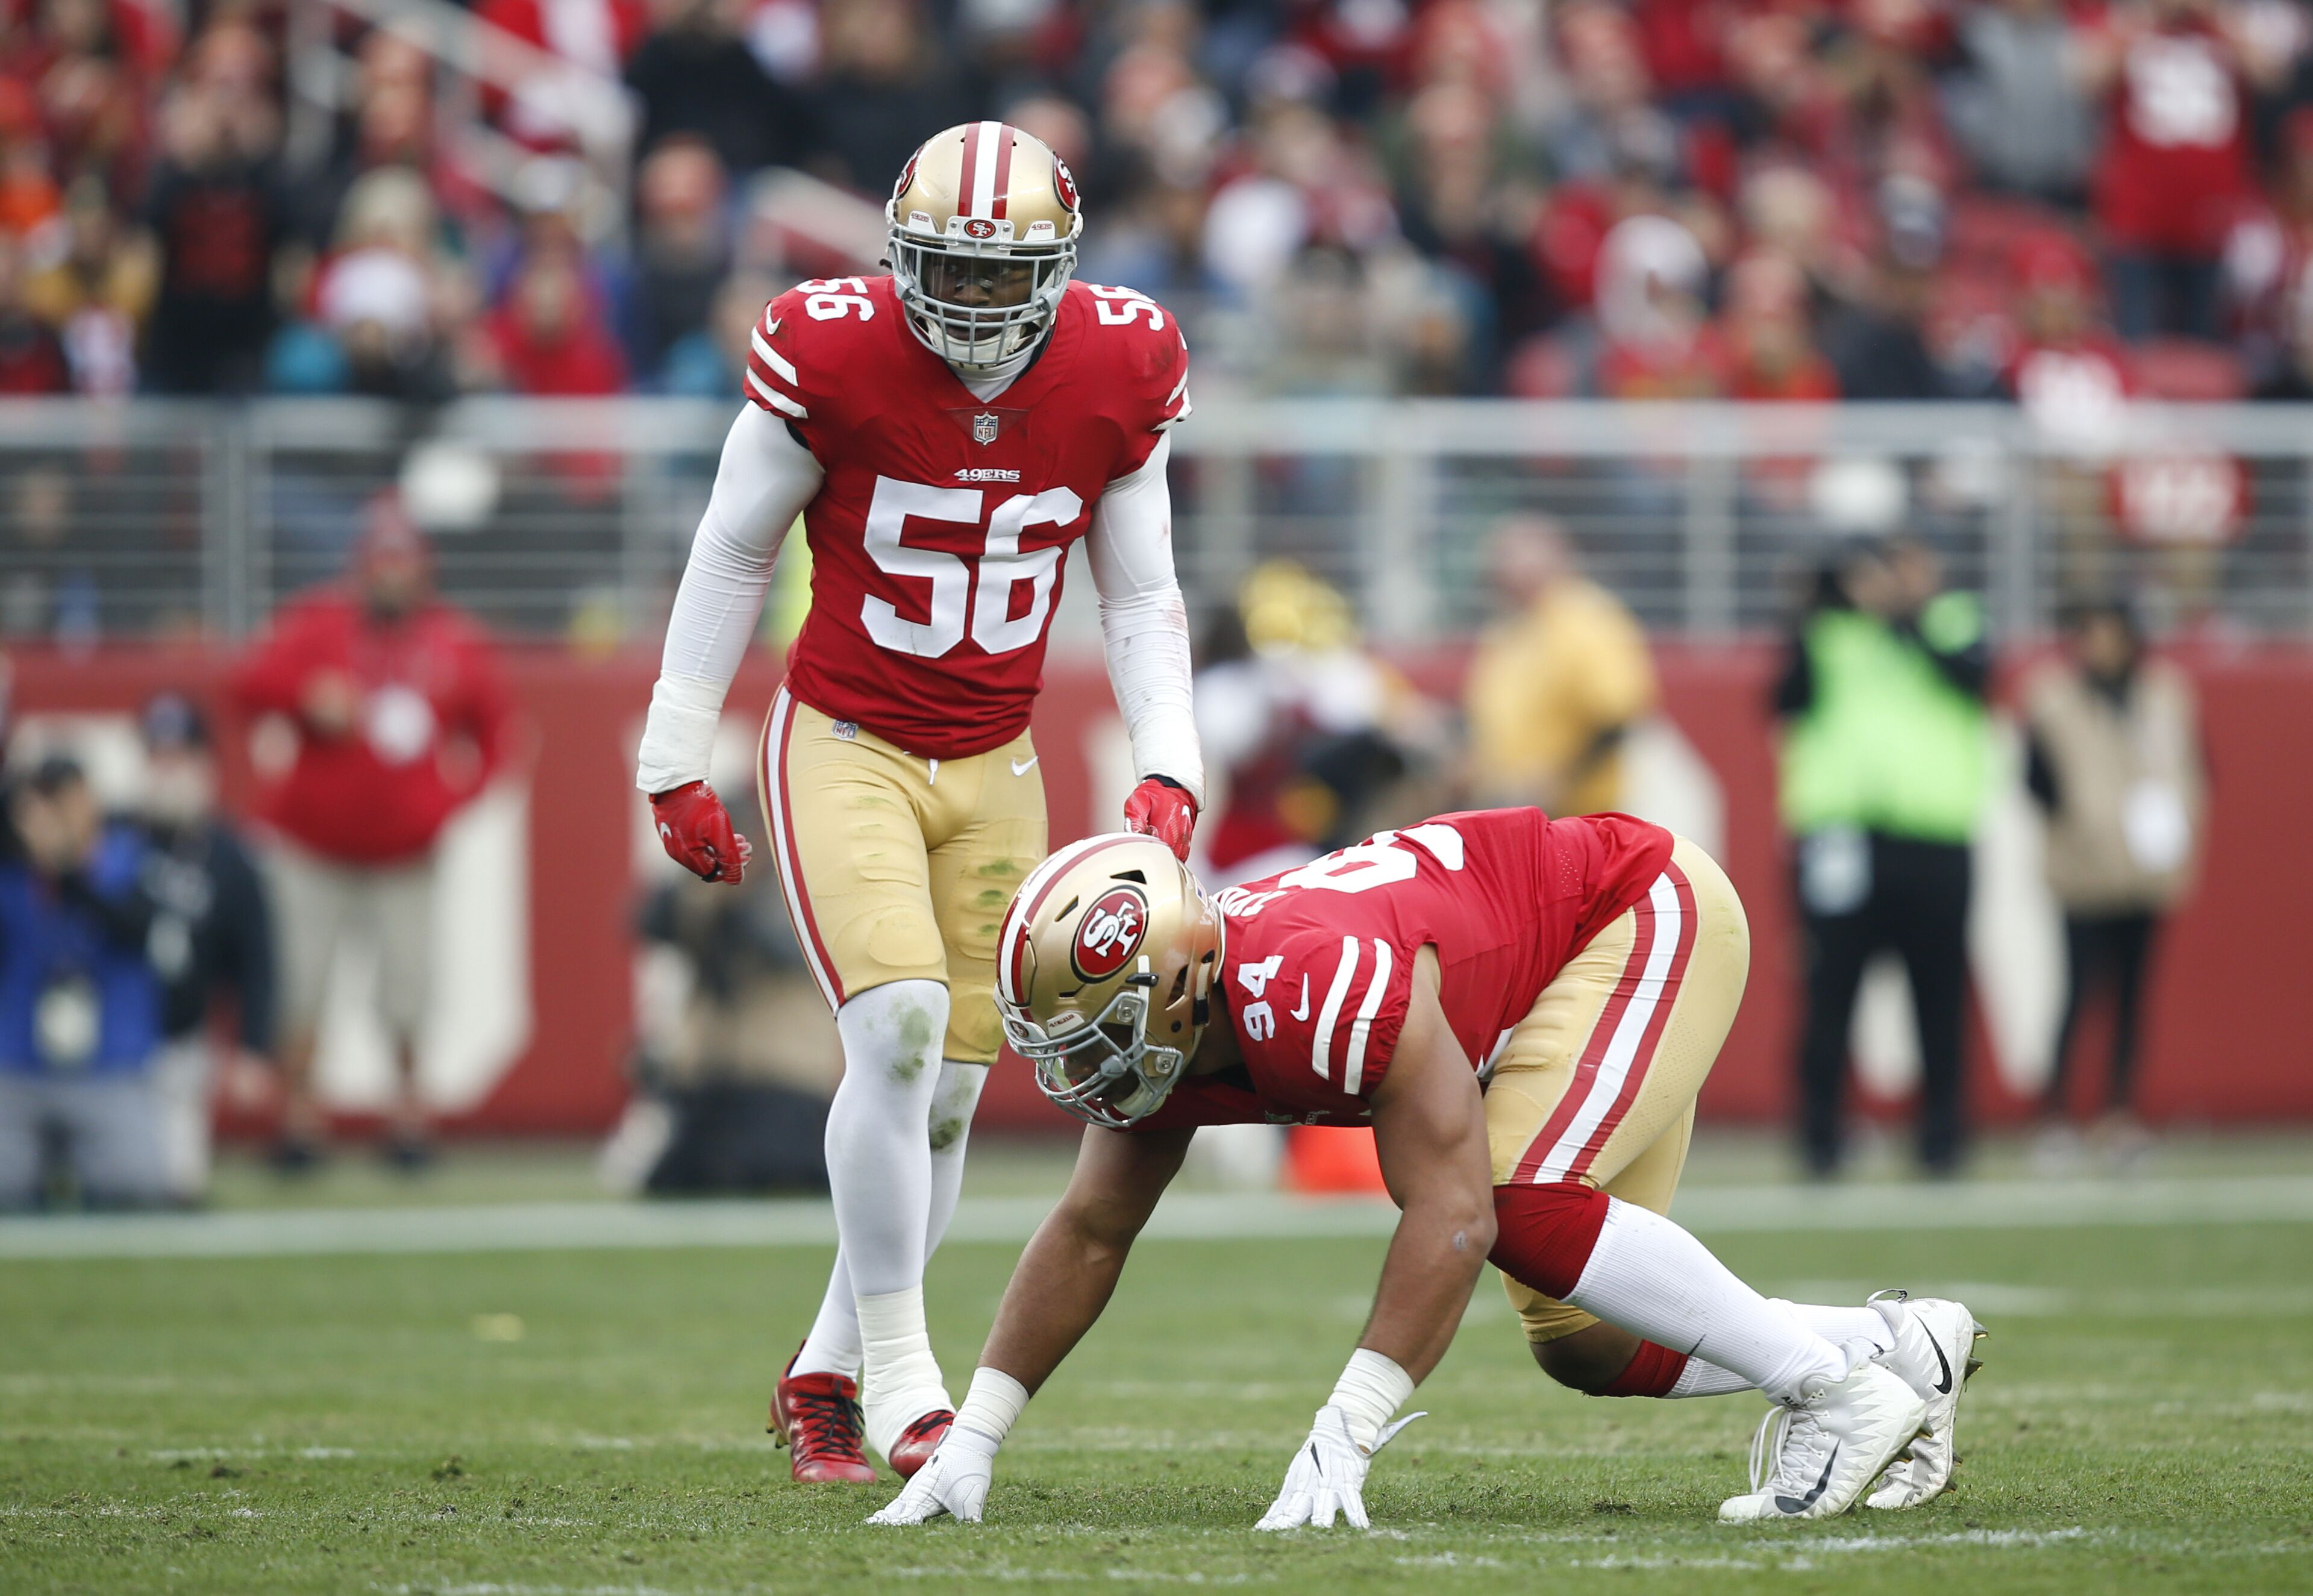 SANTA CLARA, CA - DECEMBER 24: Reuben Foster #56 and Solomon Thomas #94 of the San Francisco 49ers defend during the game against the Jacksonville Jaguars at Levi's Stadium on December 24, 2017 in Santa Clara, California. The 49ers defeated the Jaguars 44-33. (Photo by Michael Zagaris/San Francisco 49ers/Getty Images)